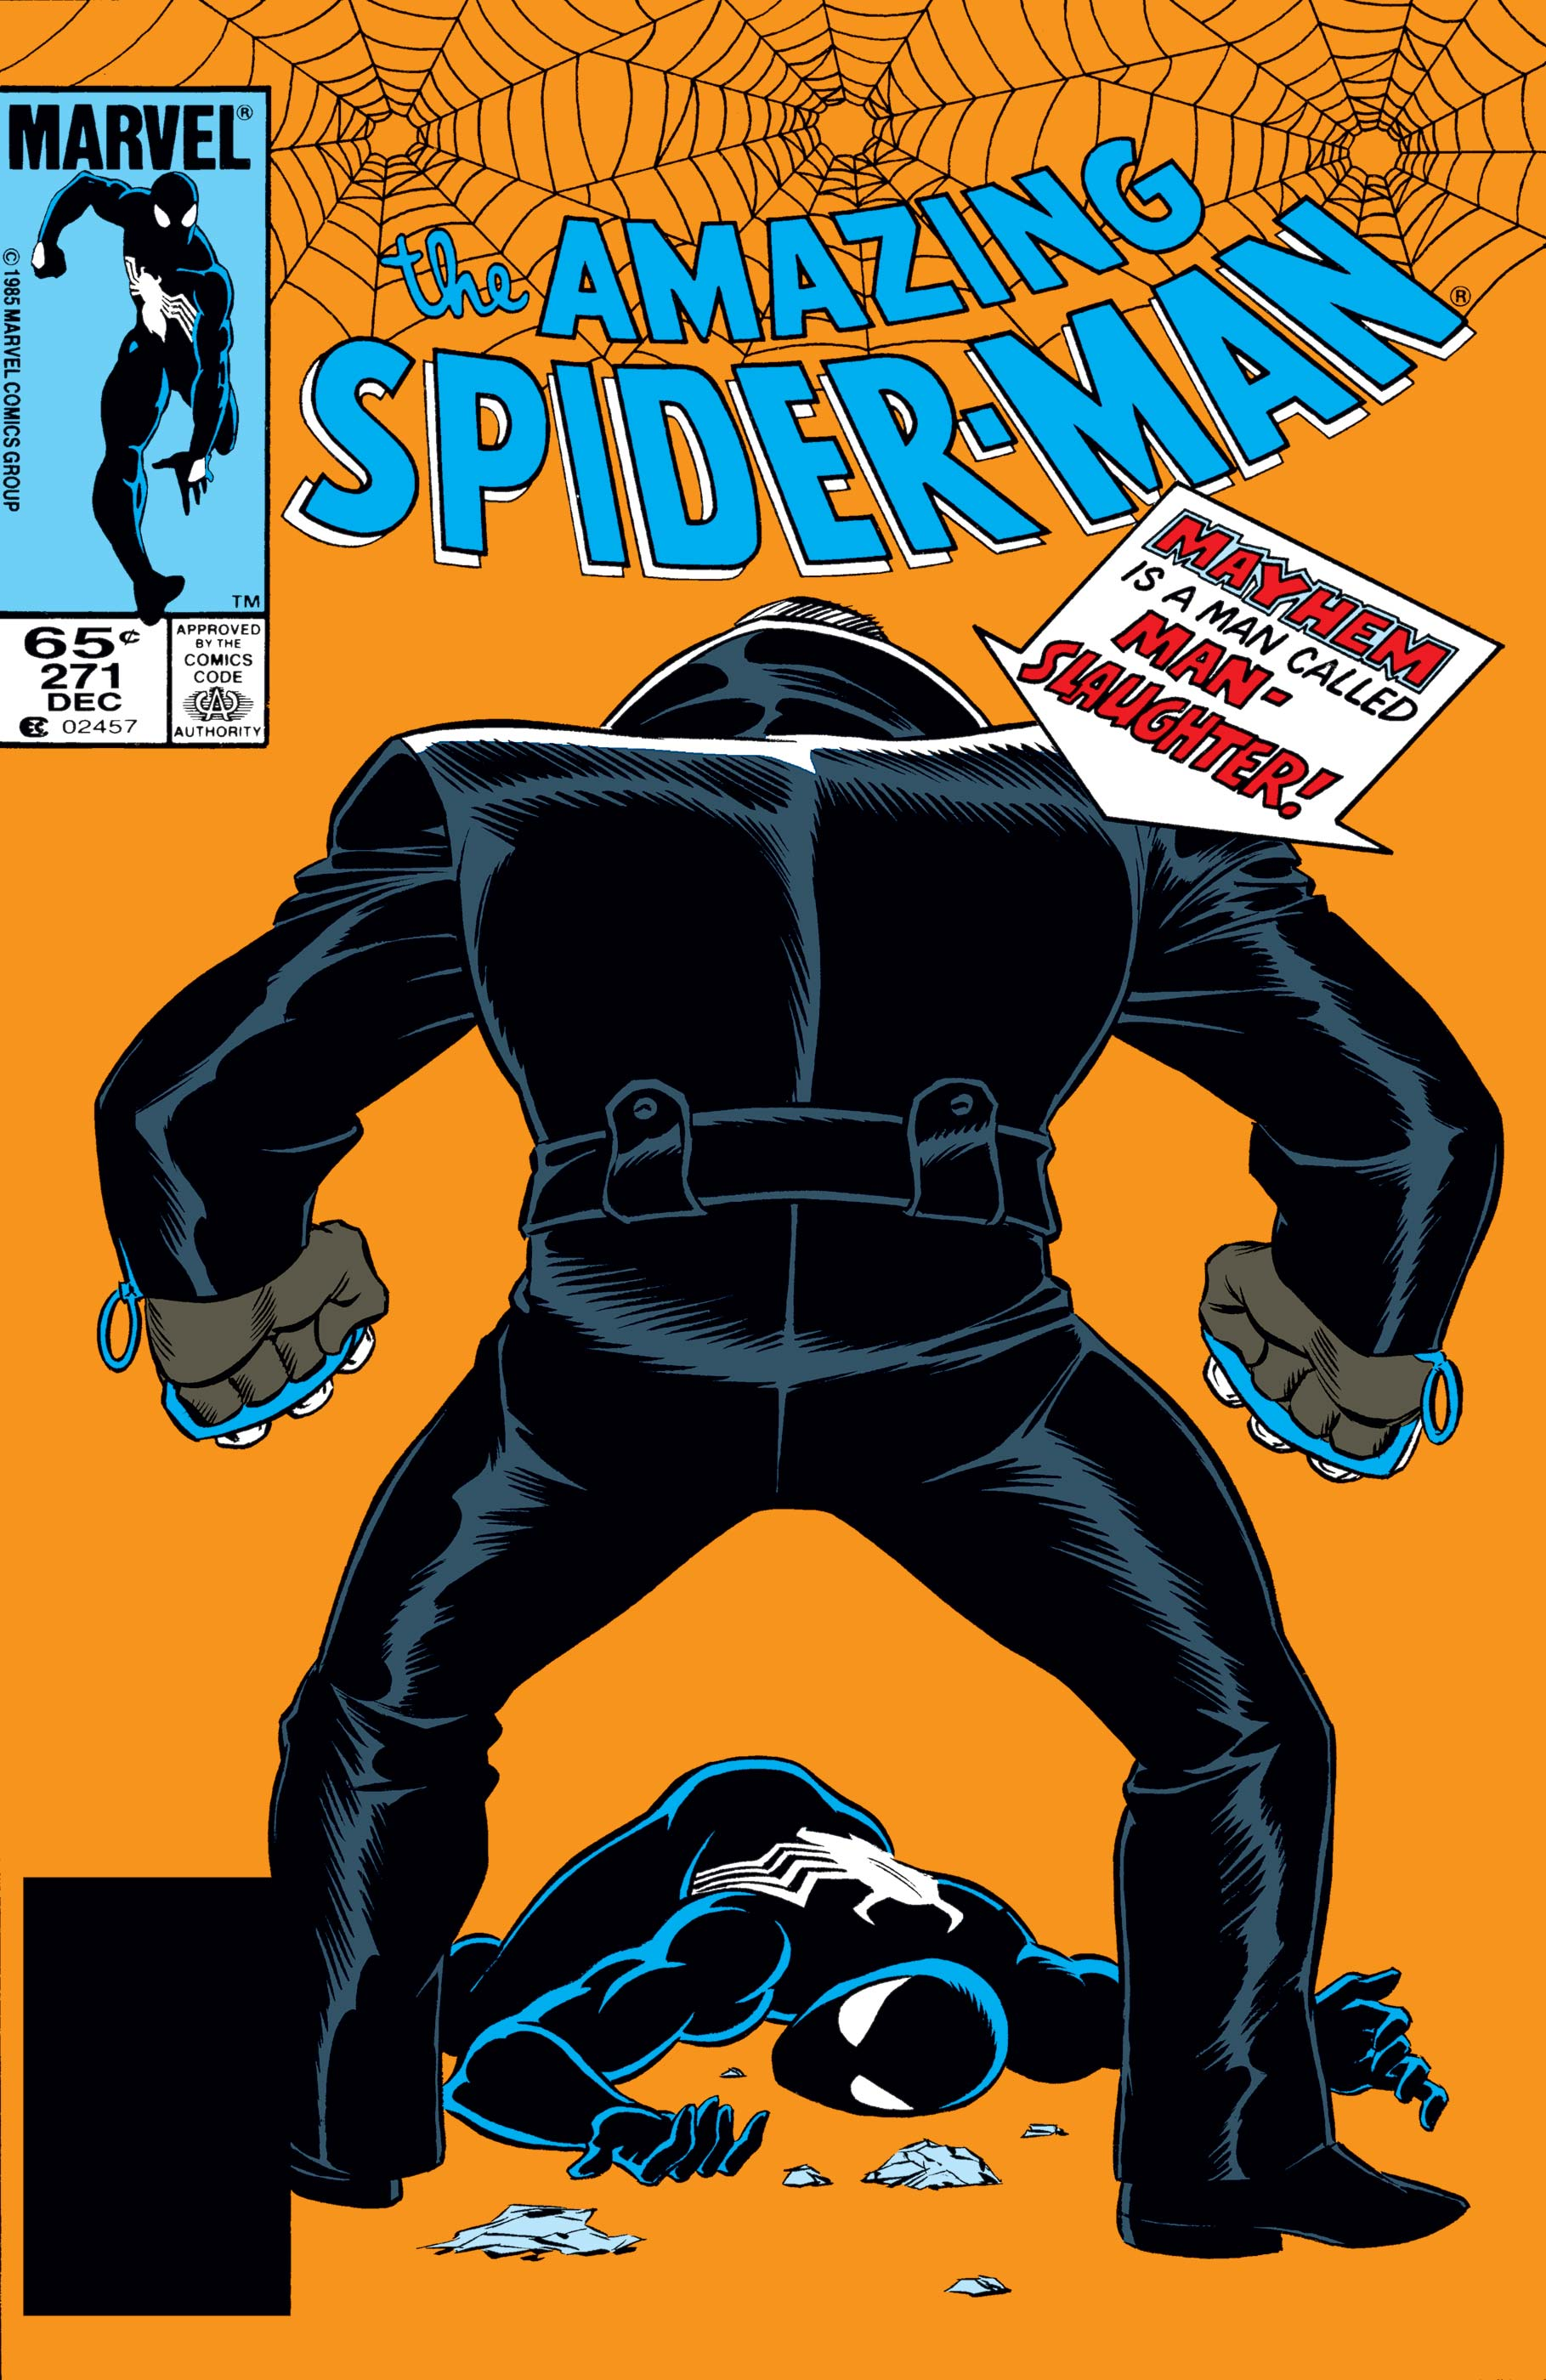 The Amazing Spider-Man (1963) #271